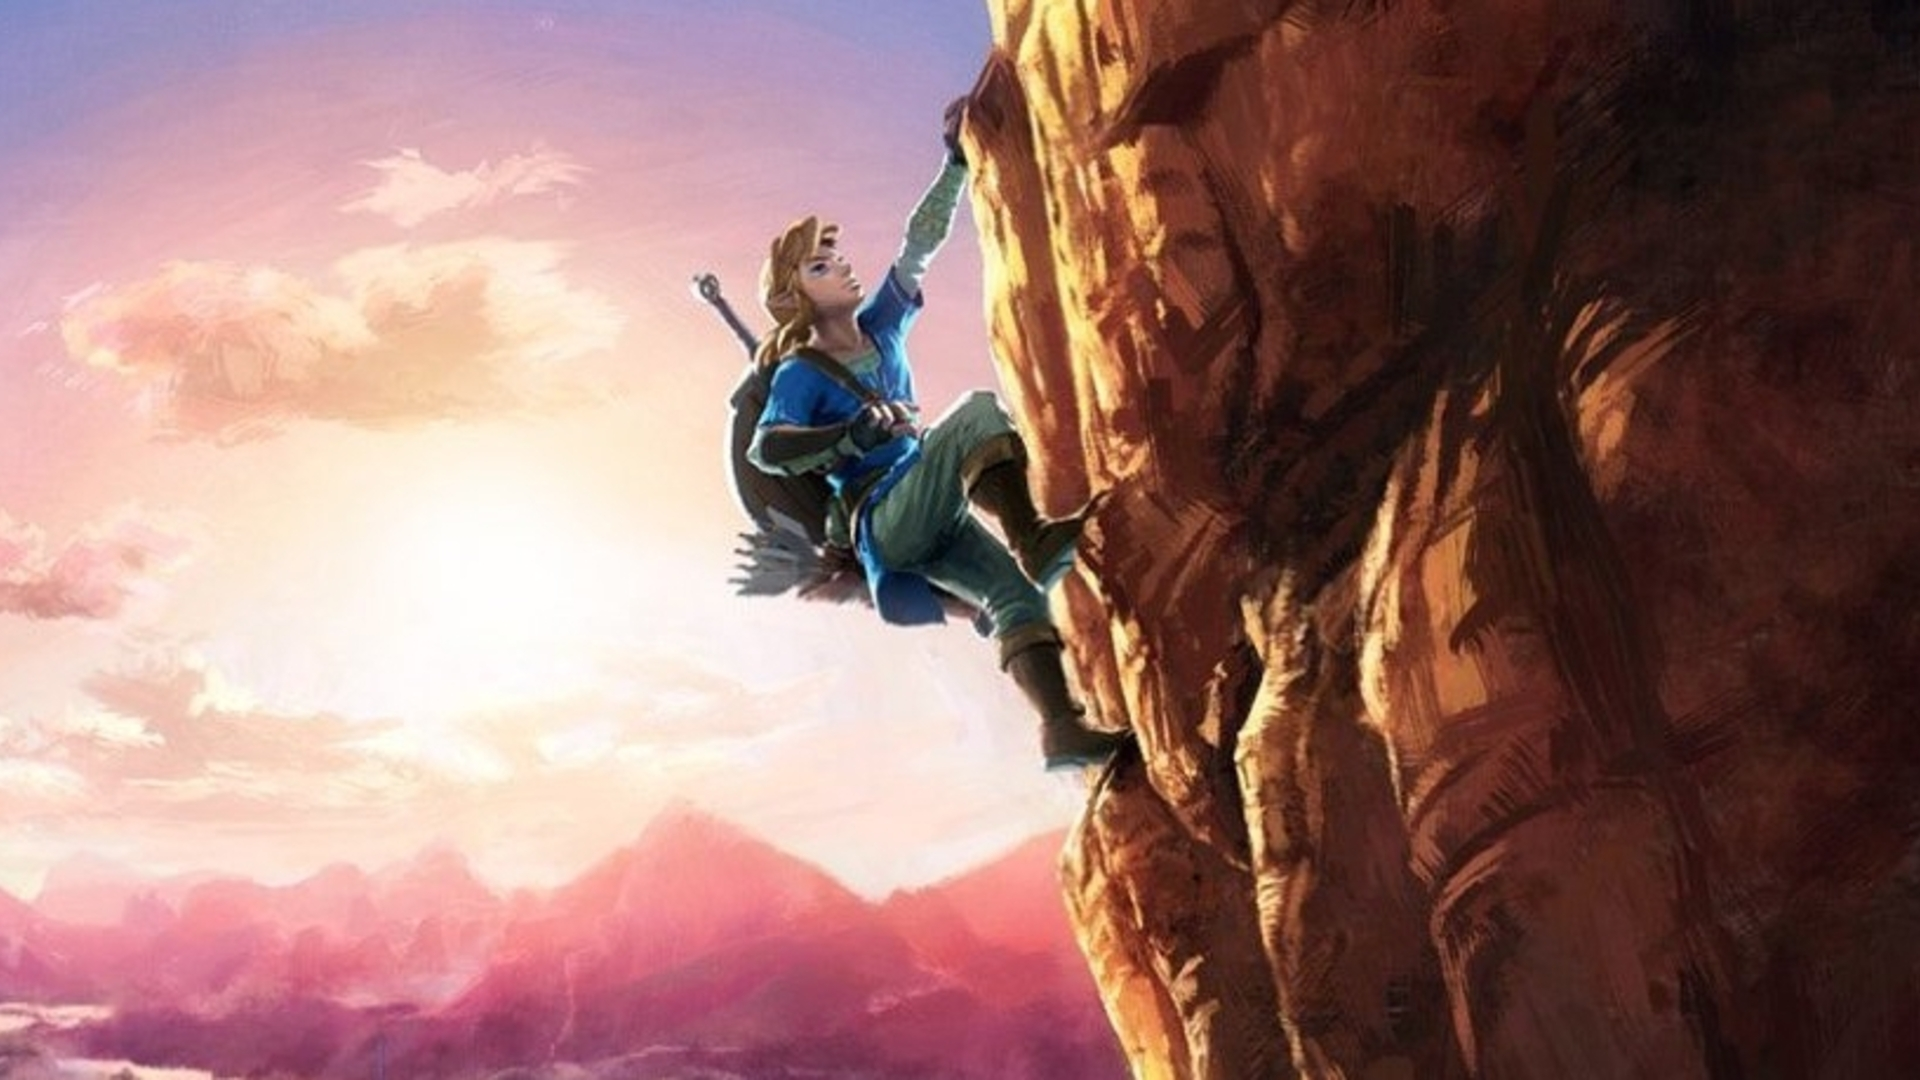 breath of the wild has finally been given a spot in the official